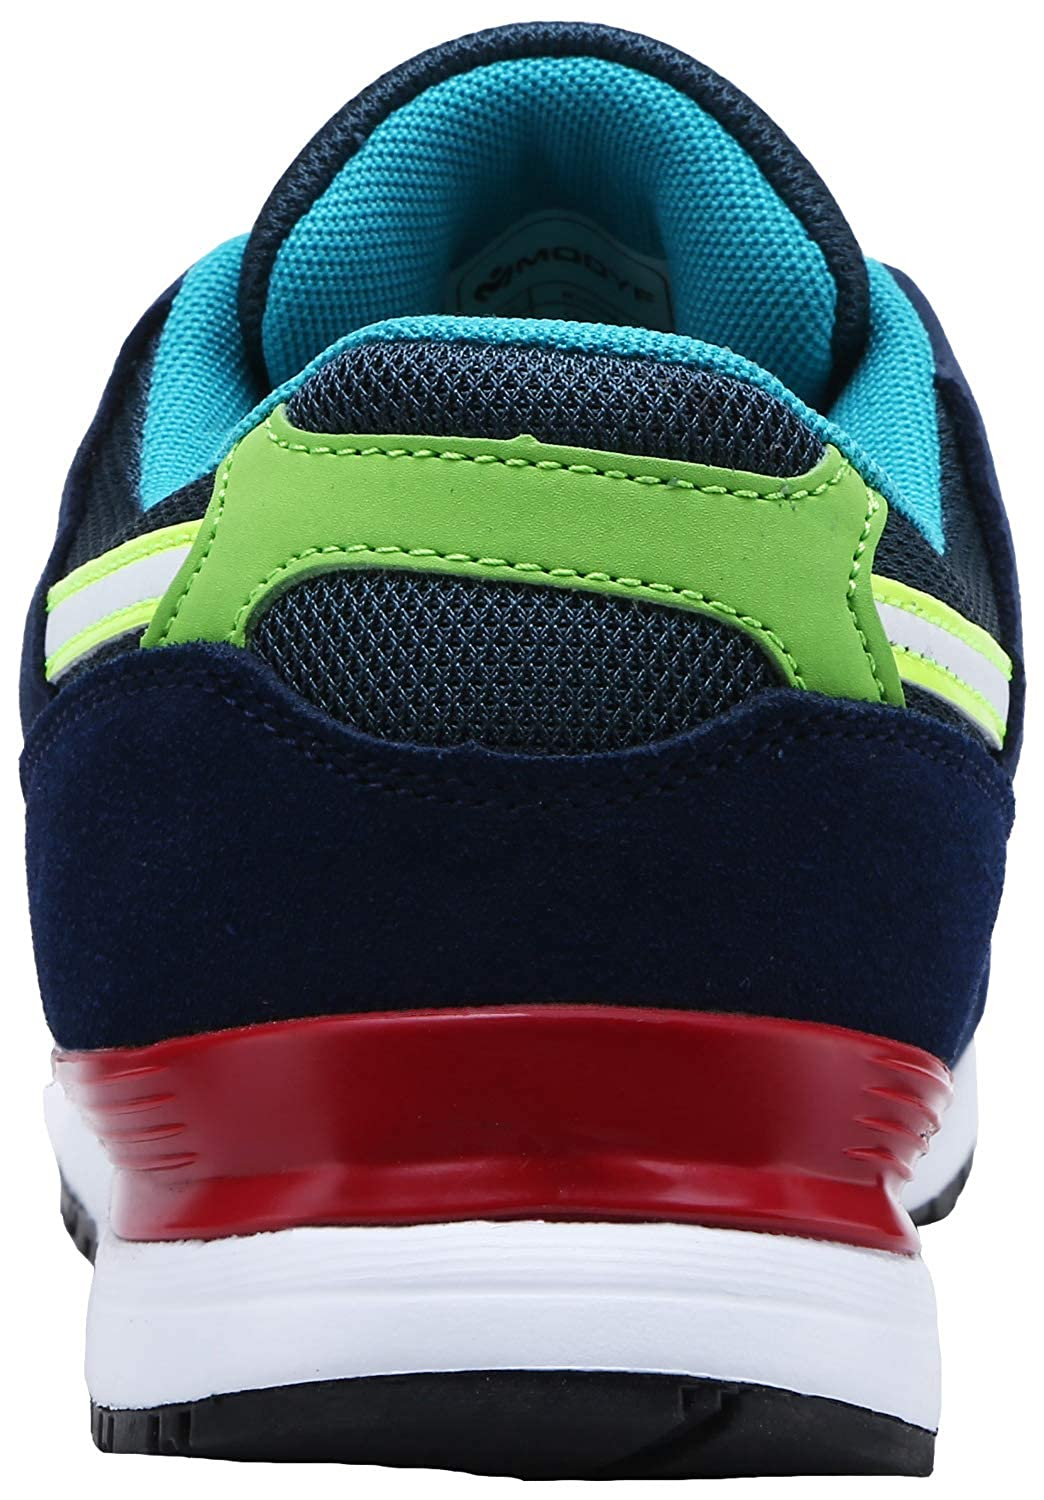 Safety Shoe Women//Men LM-130 Lightweight Steel-Toe Breathable Work Shoes Trainers